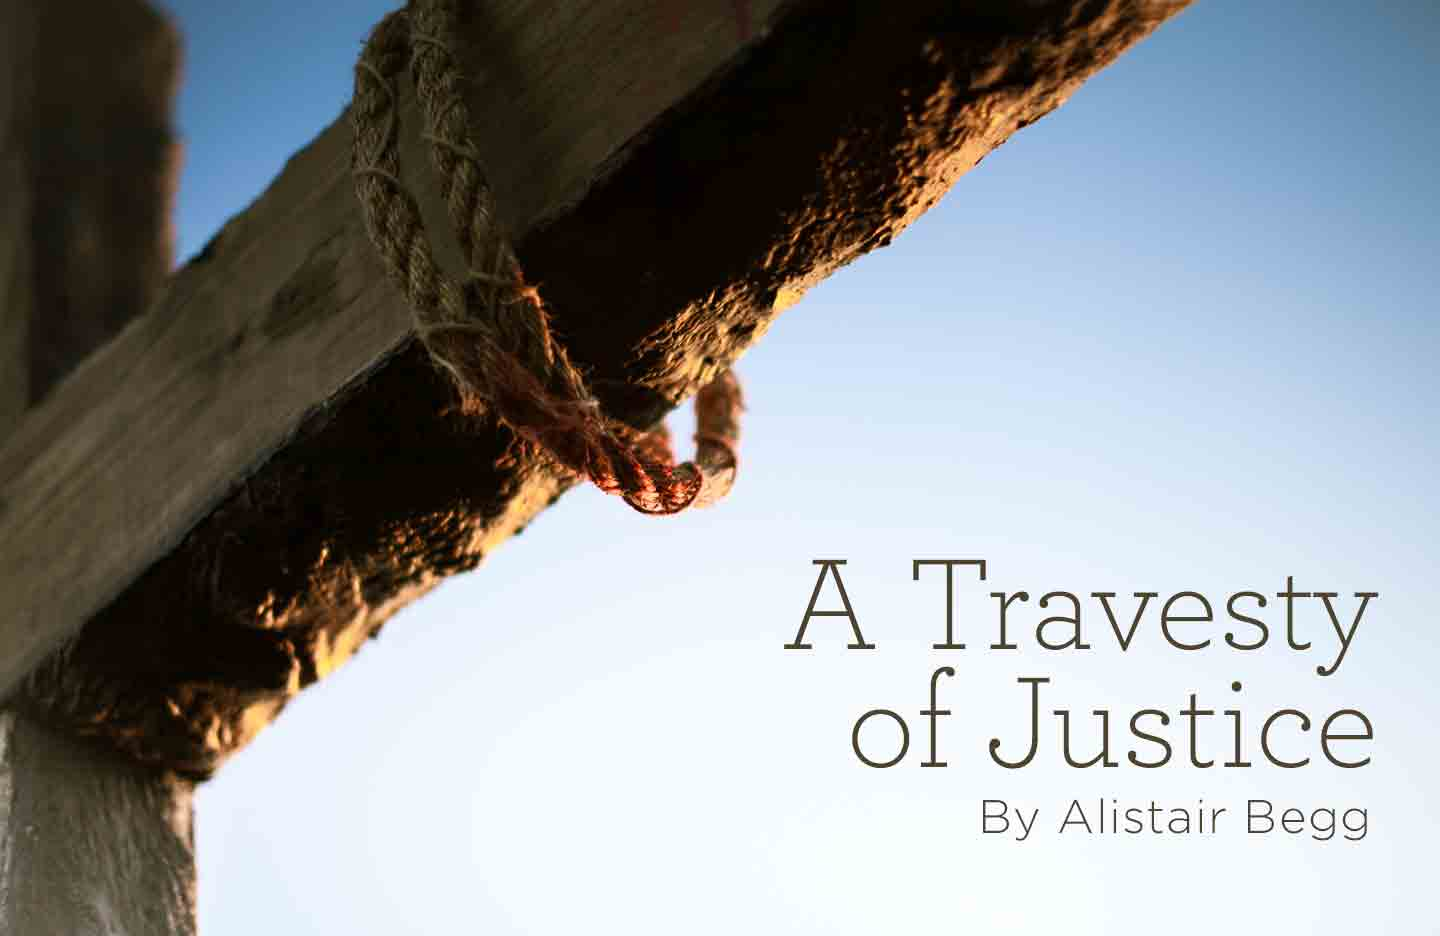 A Travesty of Justice By Alistair Begg